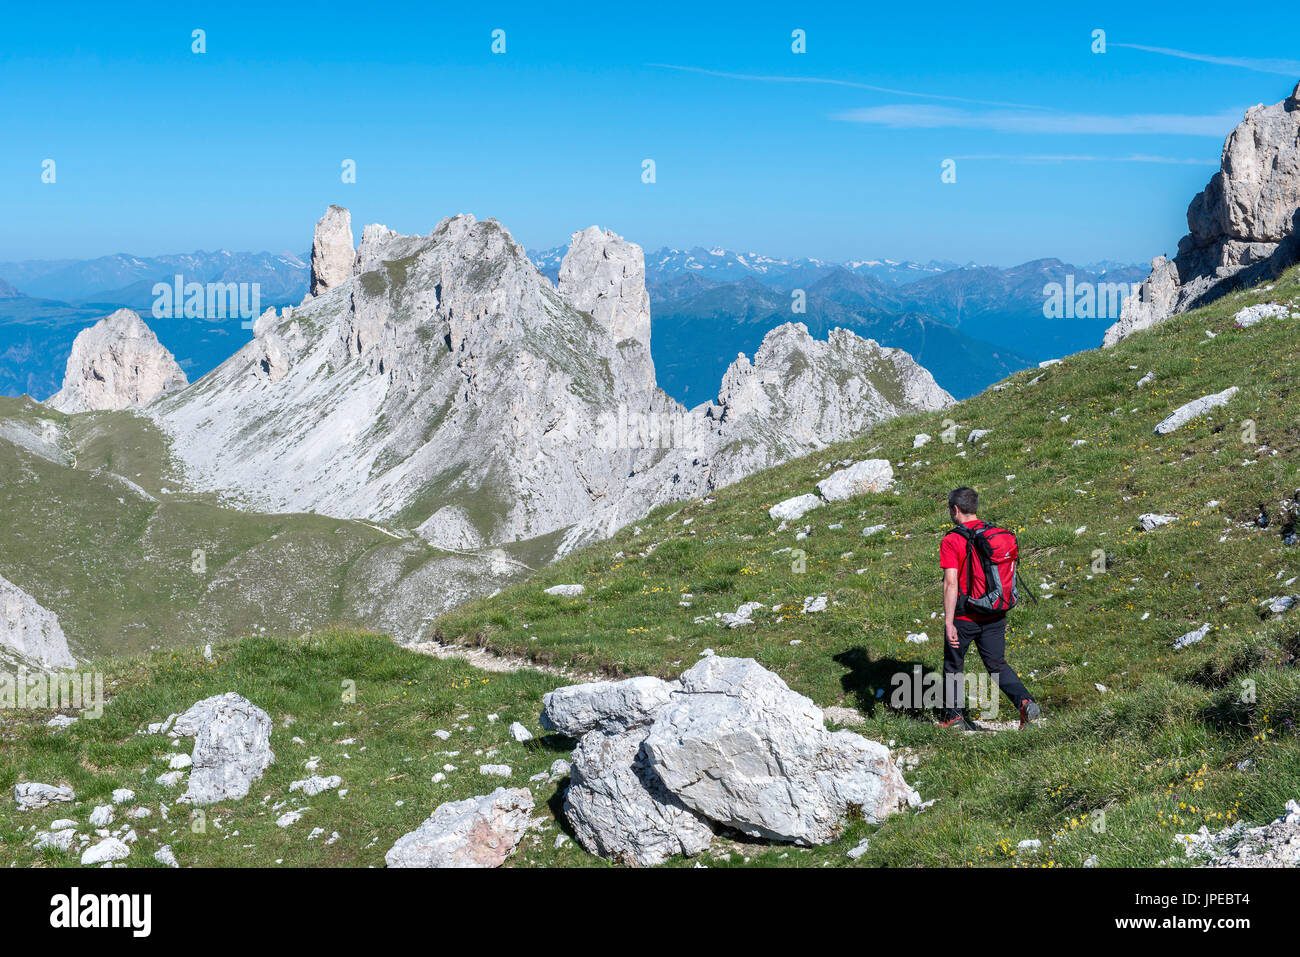 Odle di Eores, Dolomites, South Tyrol, Italy. Hiker on the Alta Via Guenther Messner. In the background the peaks of Weisslahn - Stock Image